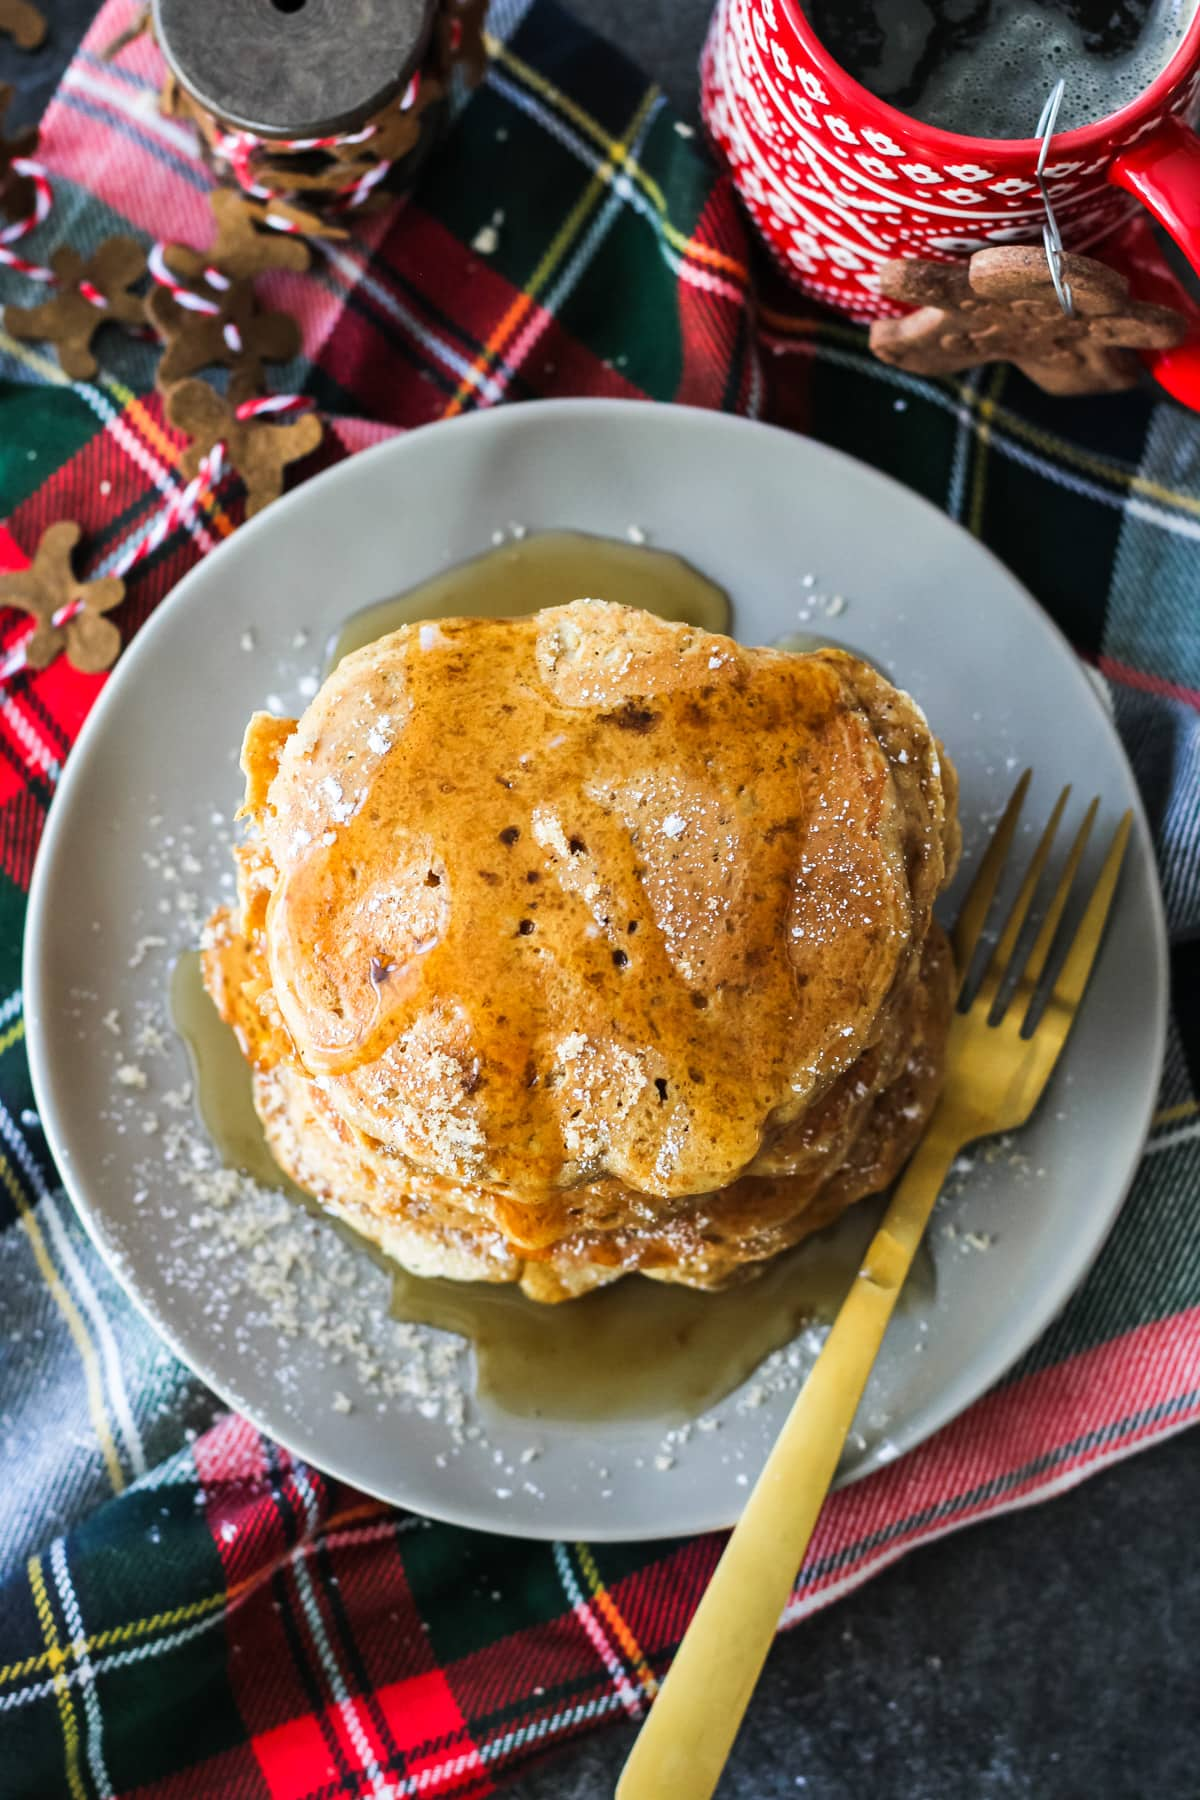 a top down view of Gingerbread Pancakes drizzled with syrup. sitting on a background of plaid napkins